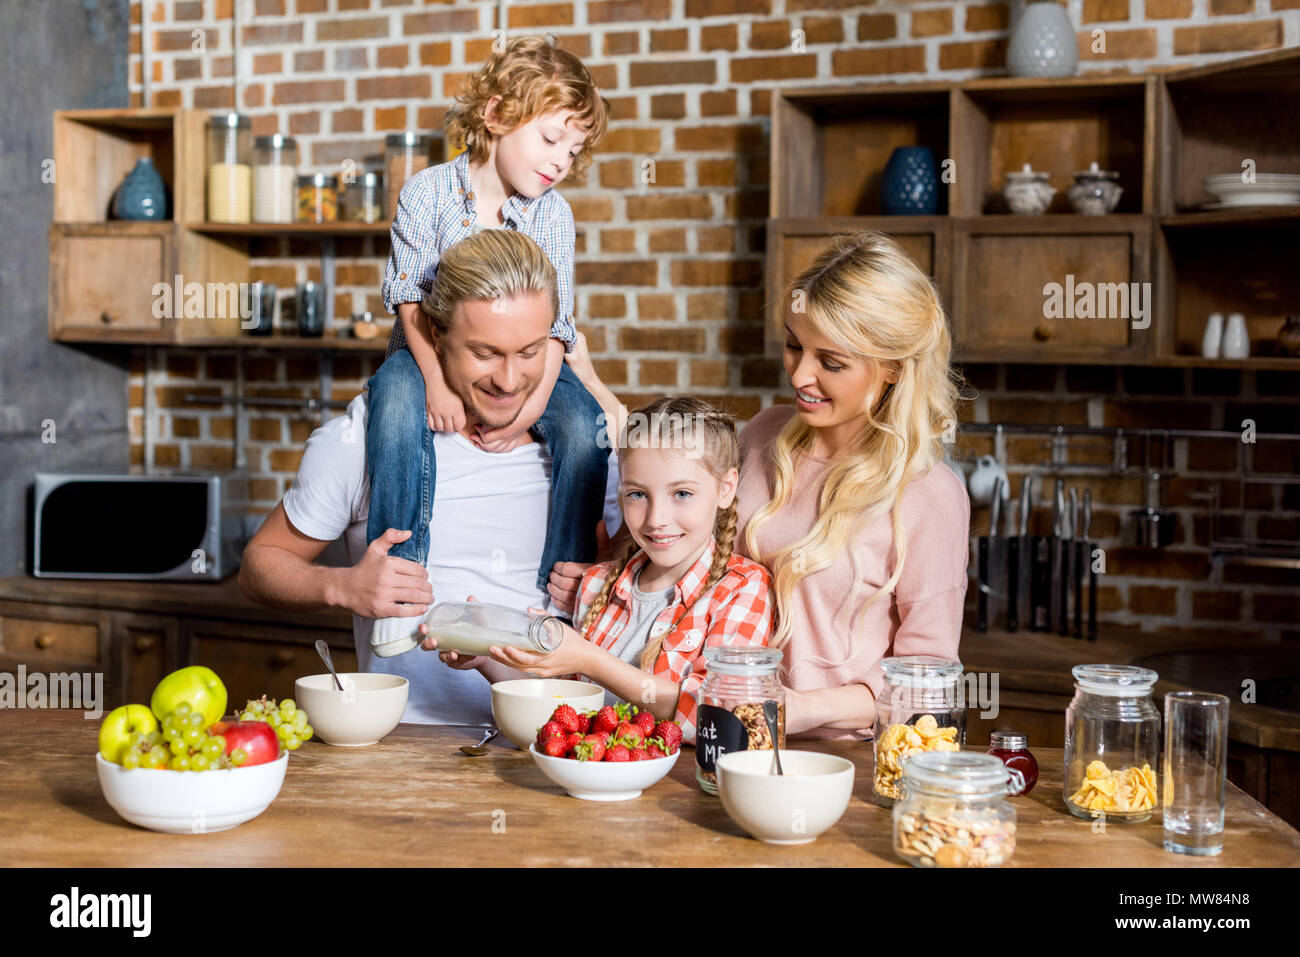 happy family with two children preparing and eating breakfast together at home - Stock Image